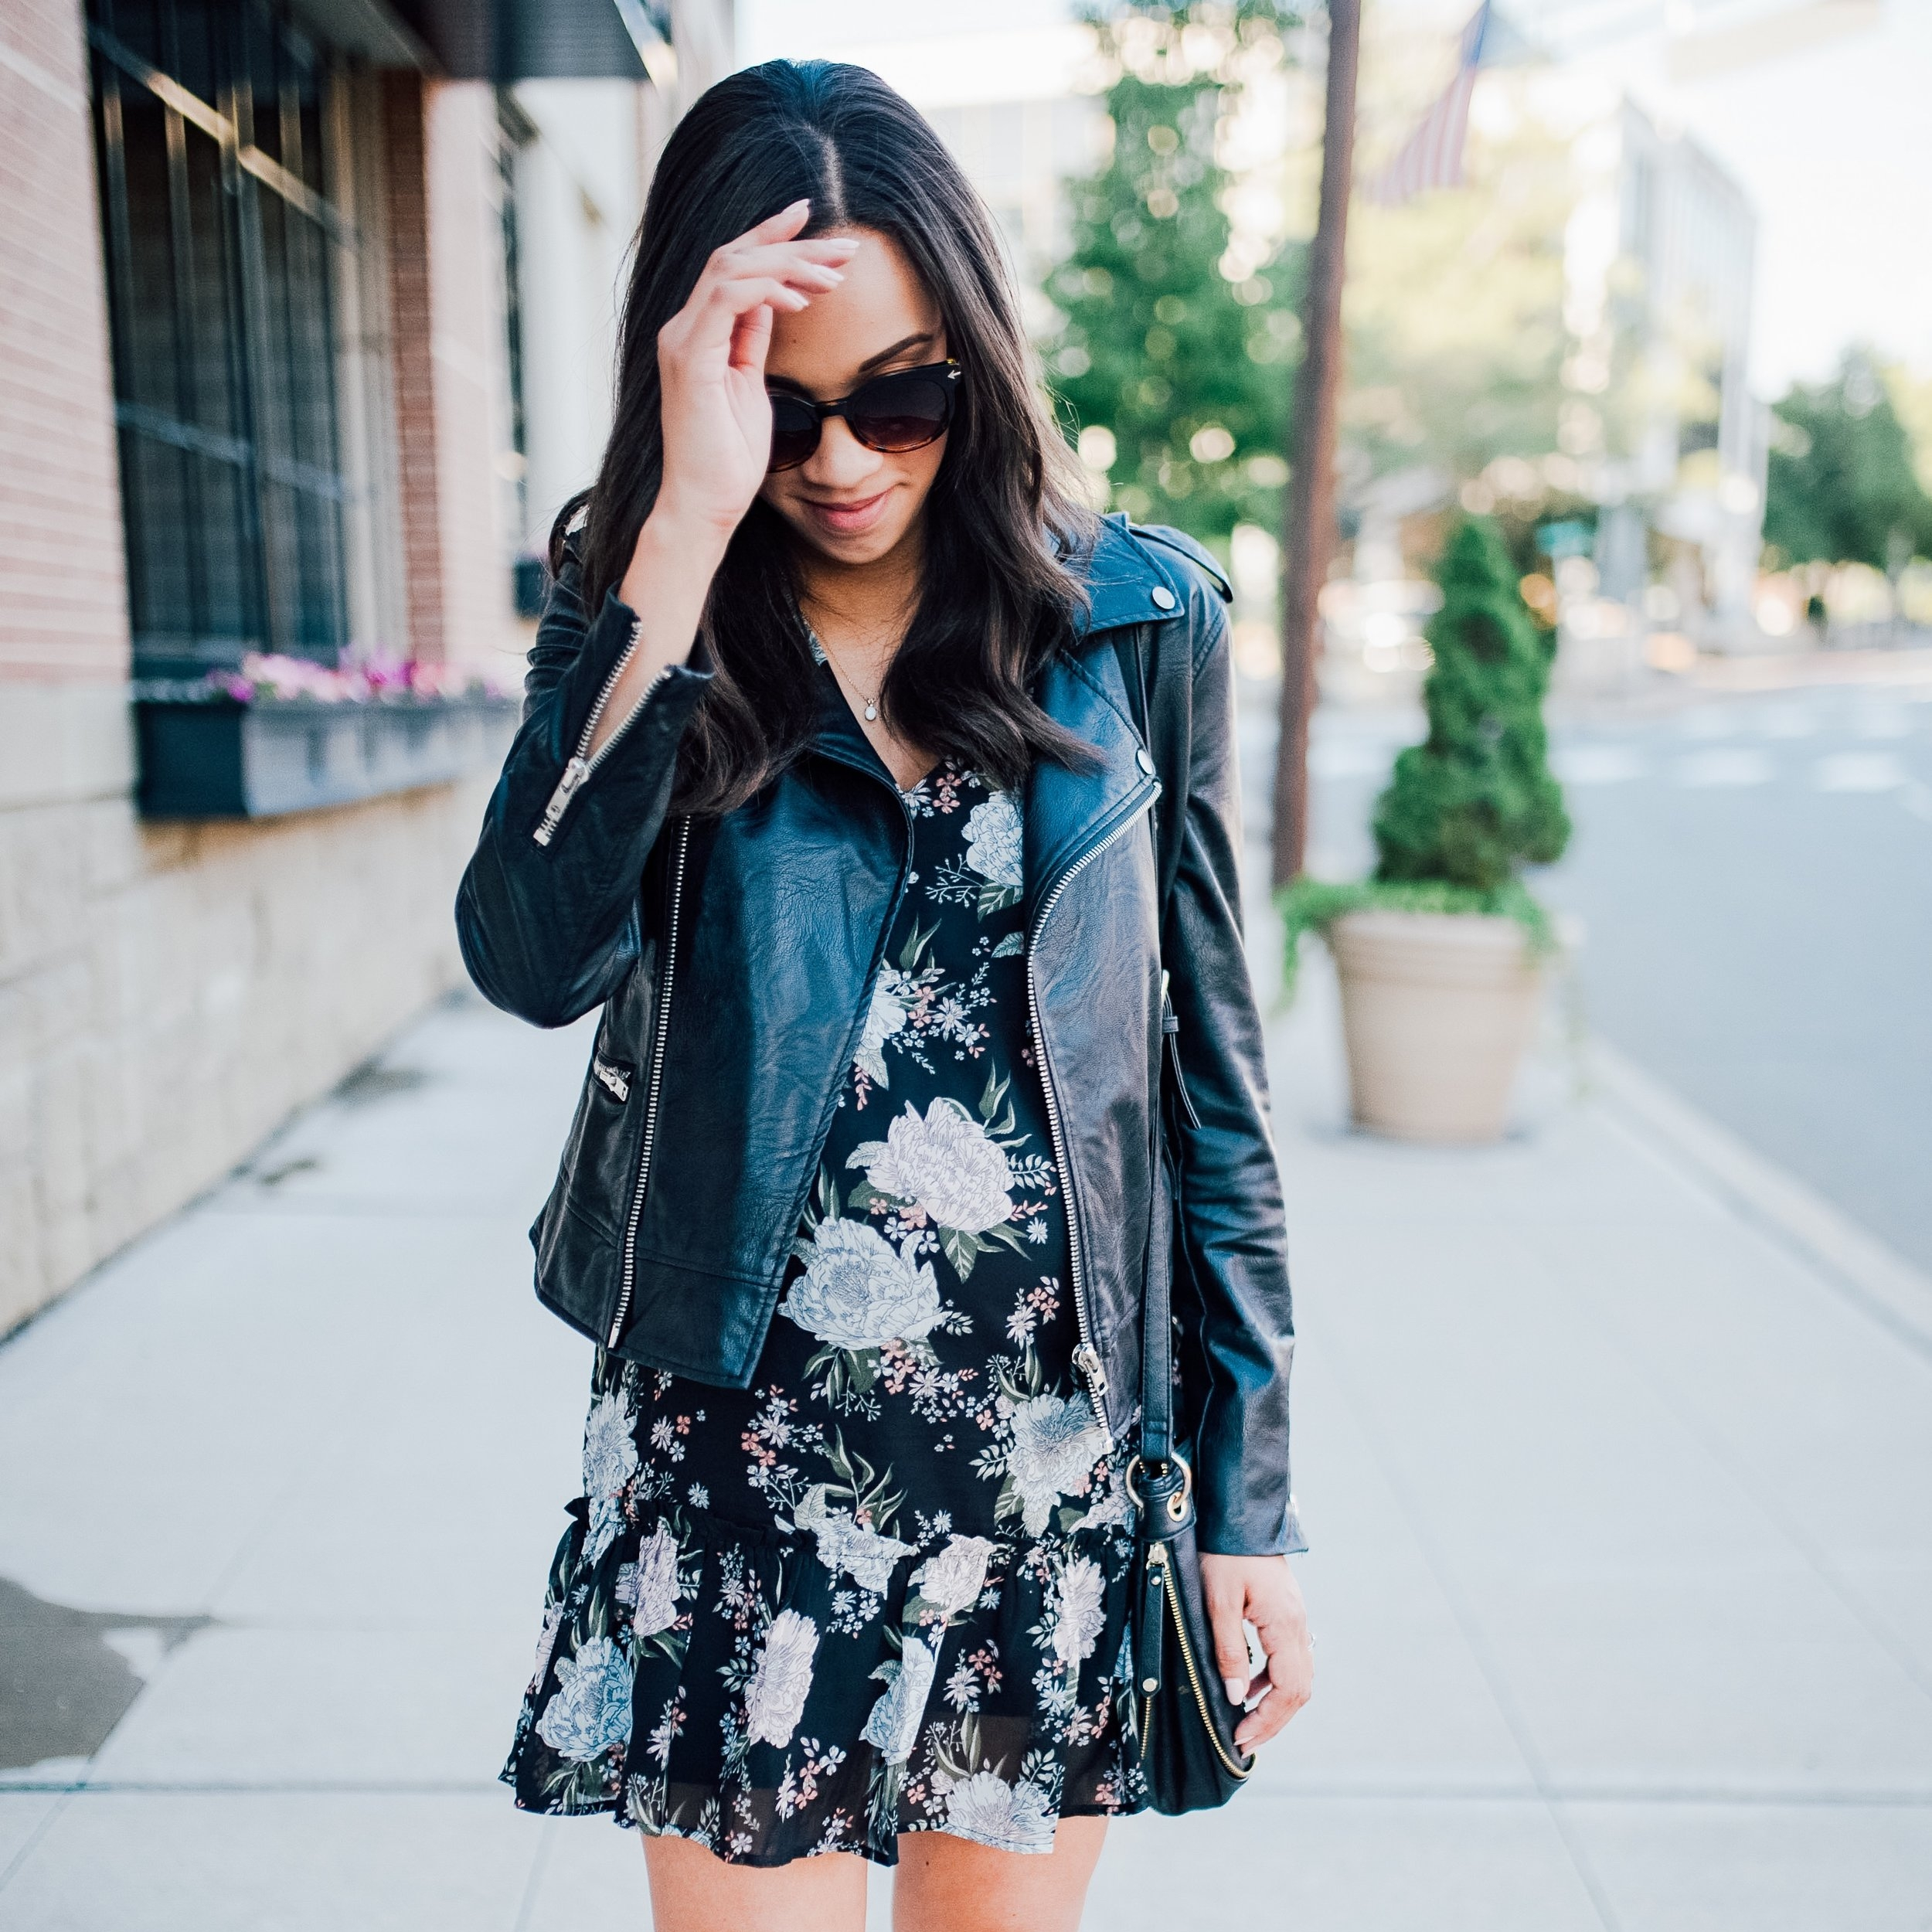 Faux Leather + Floral Dress + Maternity Style 9.jpg